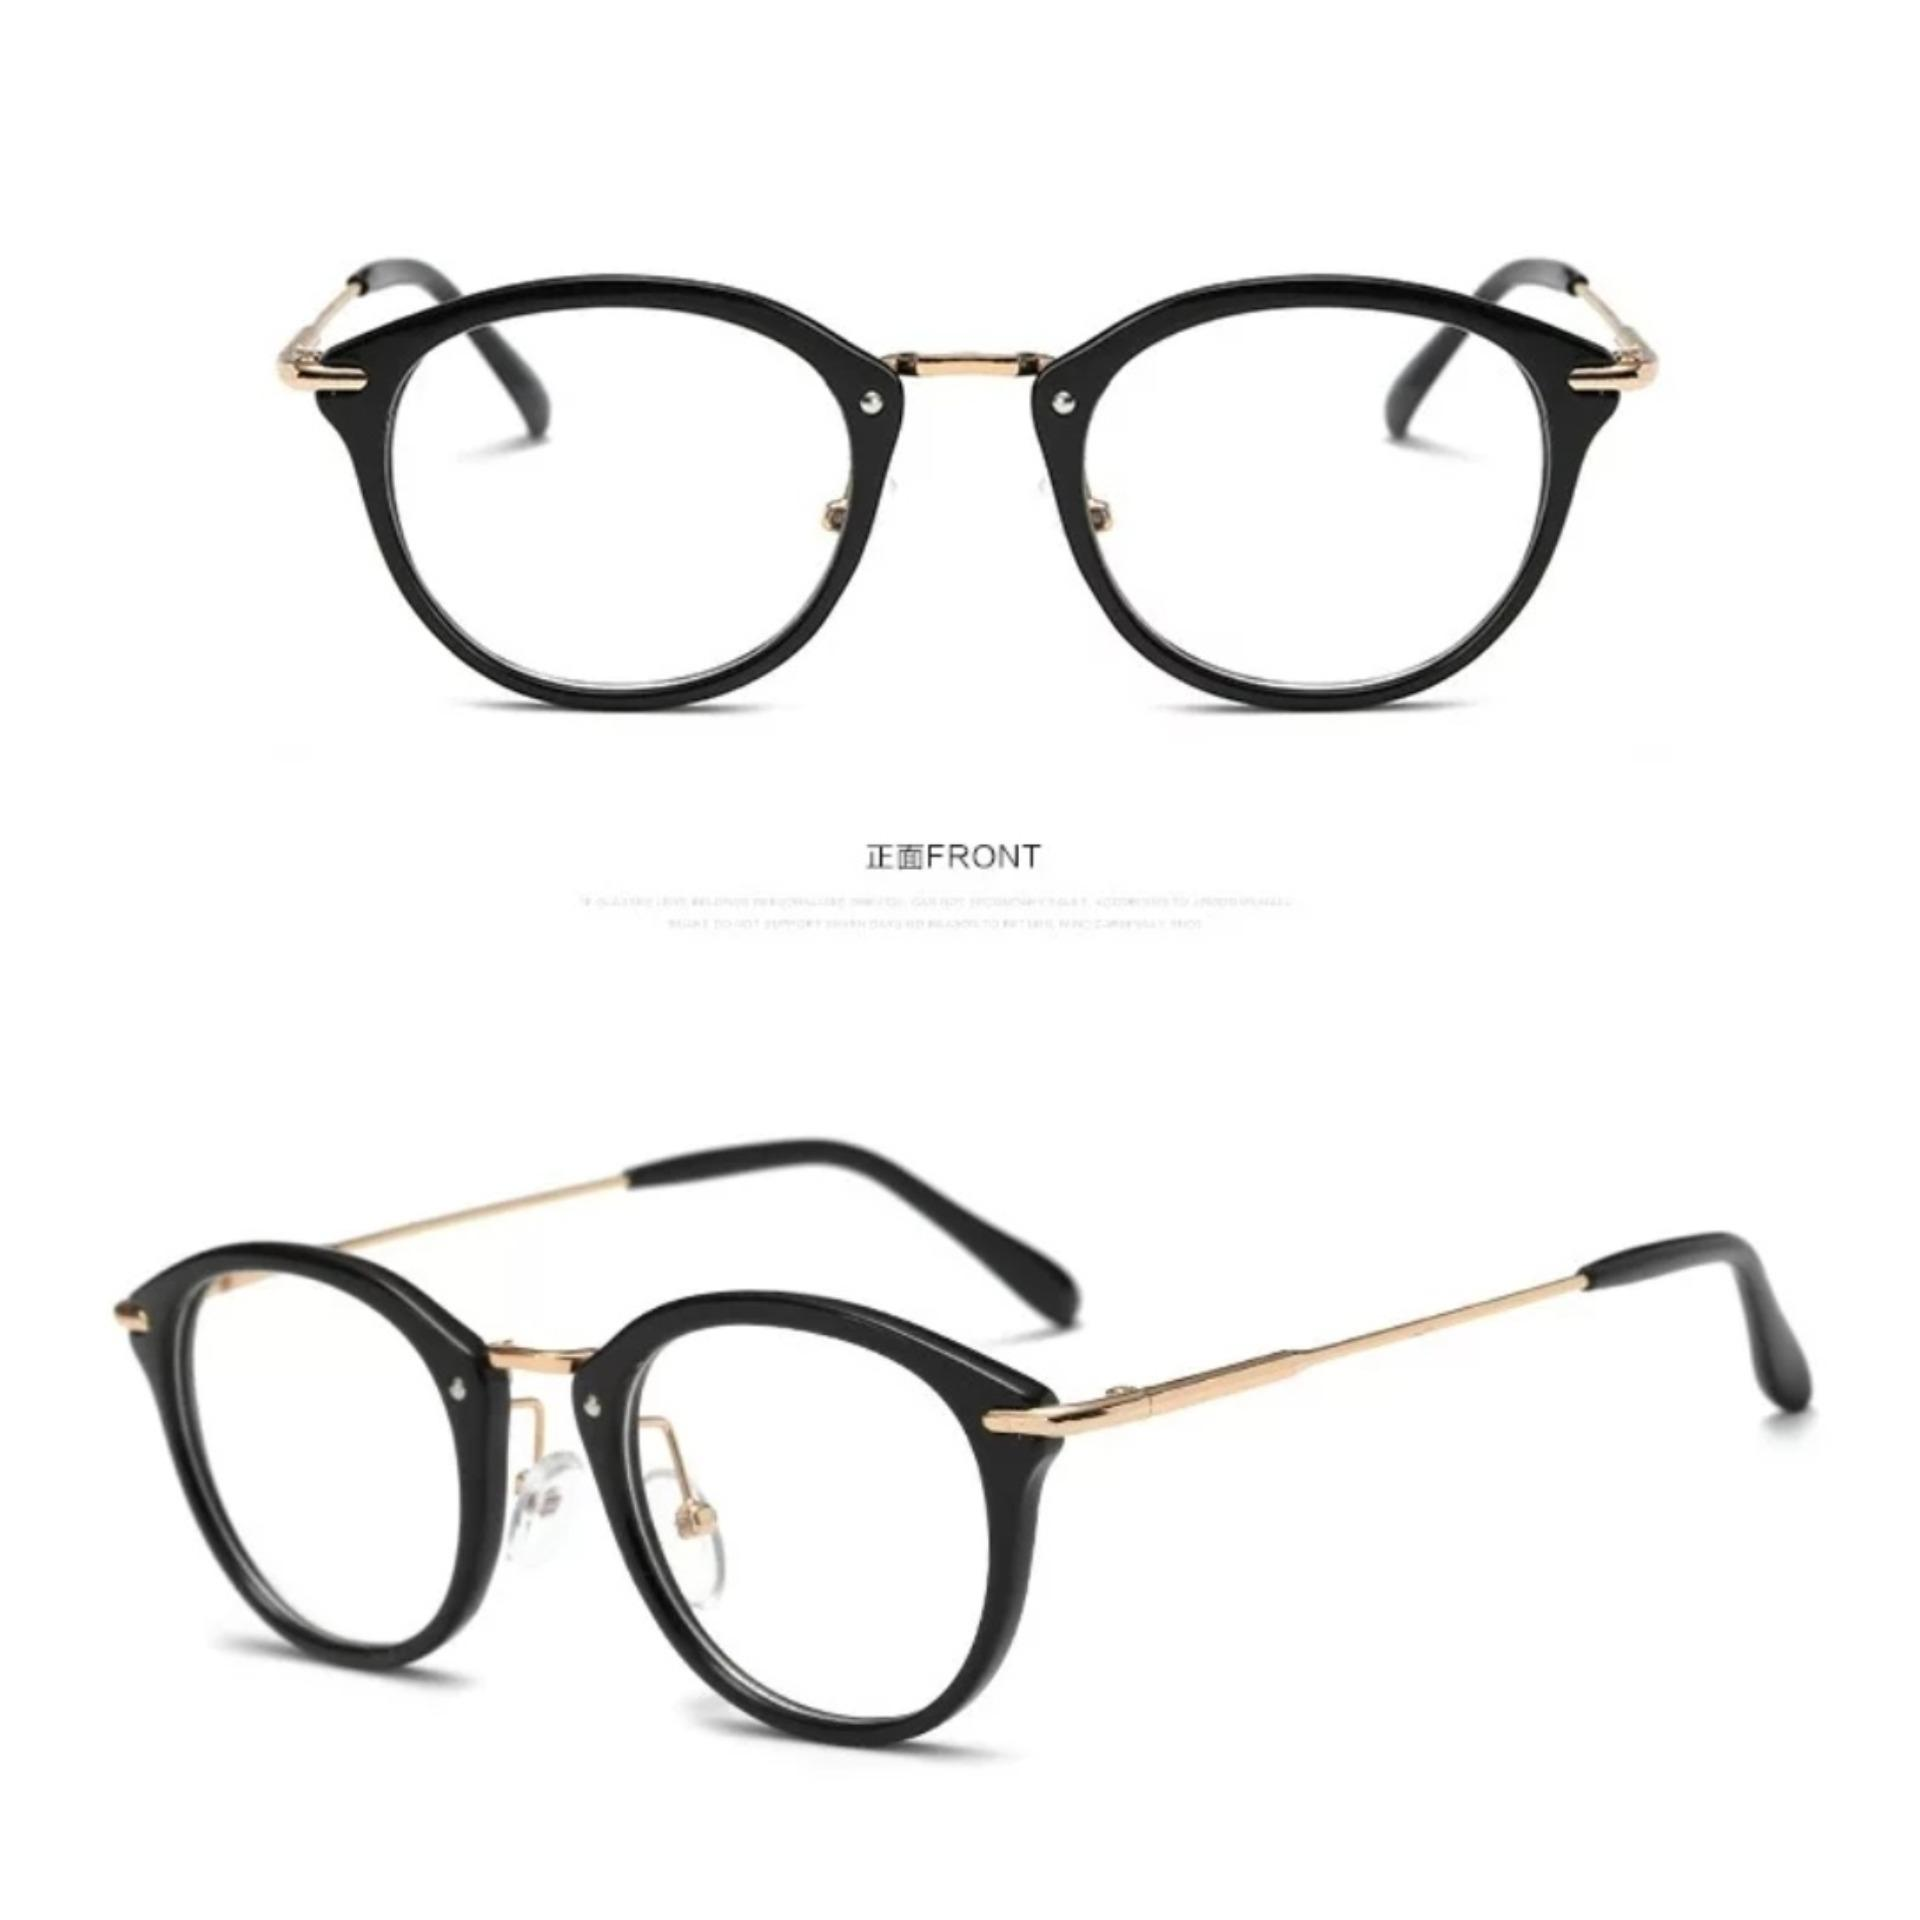 High Quality Charming Women's Round Clear Lens Glasses Metal Frame Nerd Eyeglass Spectacles 830 PINK -